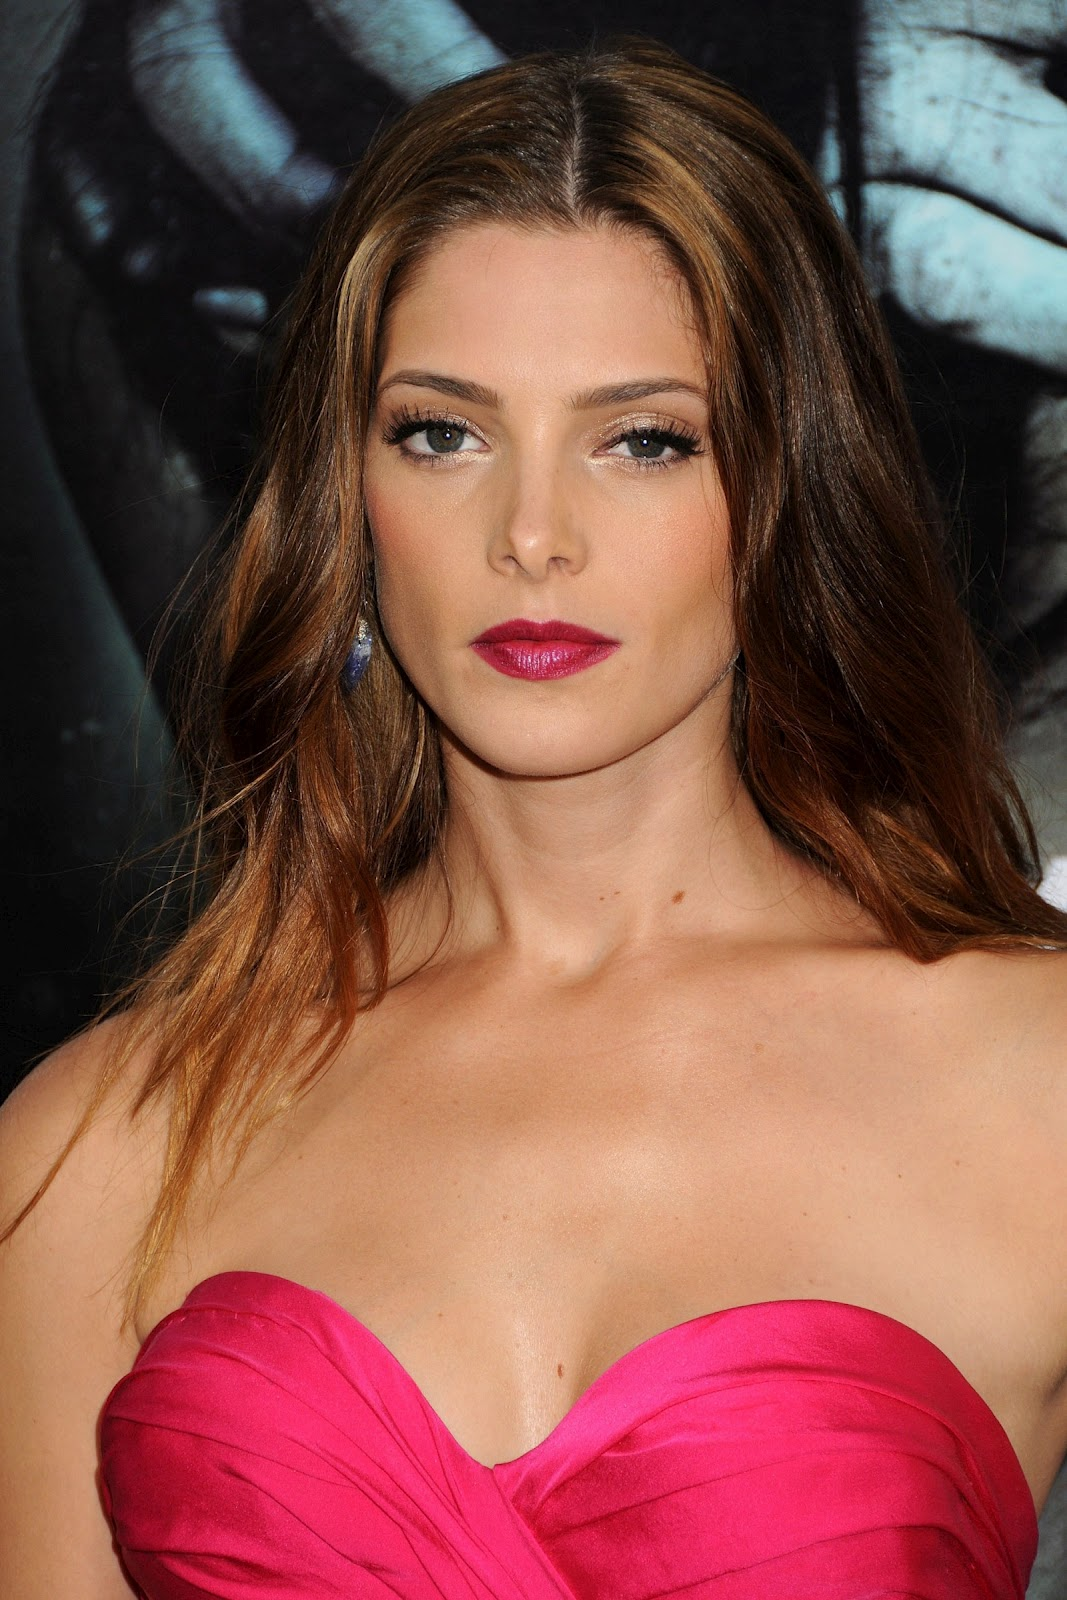 http://3.bp.blogspot.com/-rS5ll50isf4/UDi3u0atG4I/AAAAAAAAisU/qBTXkYxax70/s1600/Ashley-Greene_6.jpg